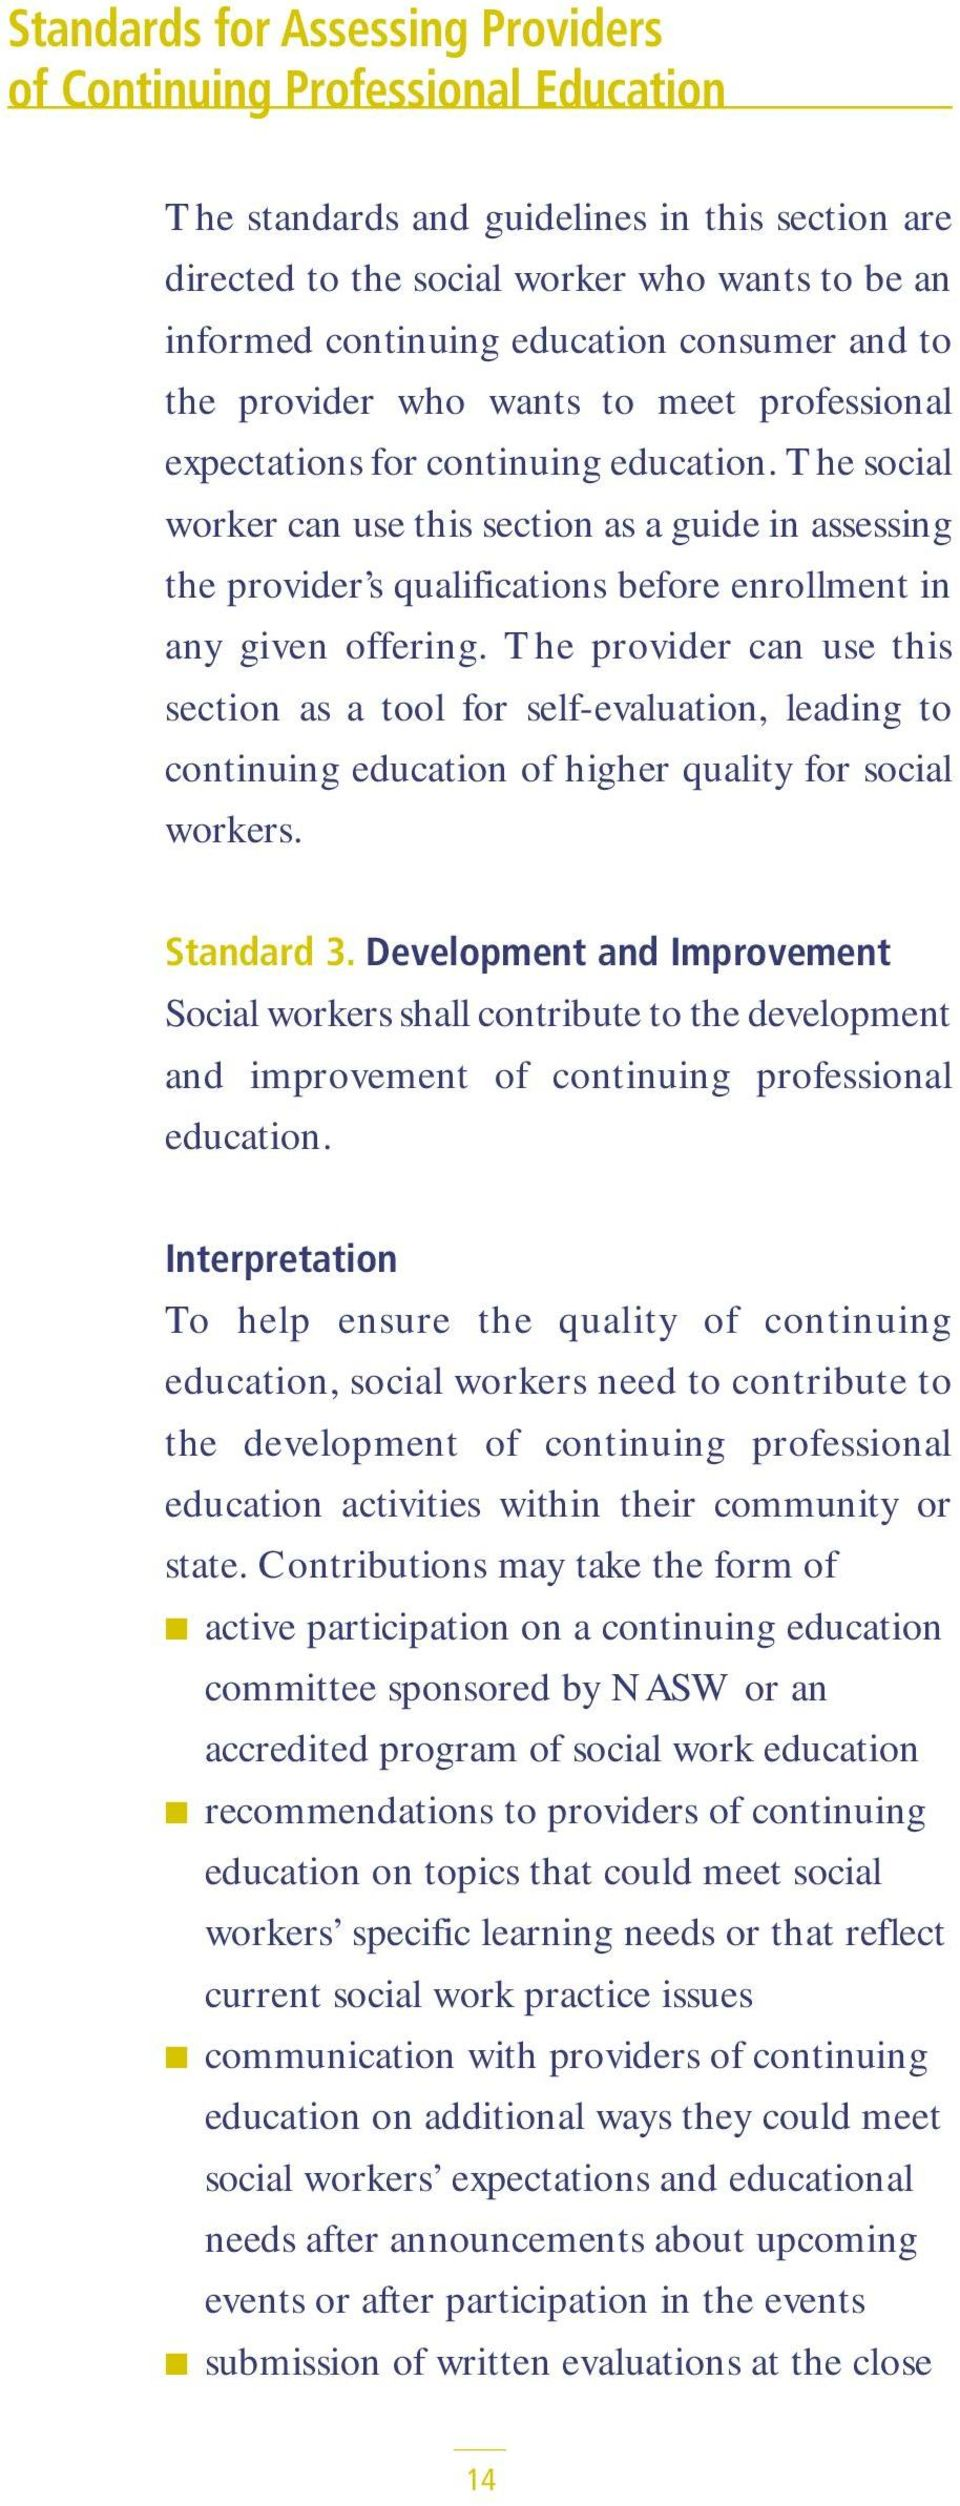 The social worker can use this section as a guide in assessing the provider s qualifications before enrollment in any given offering.